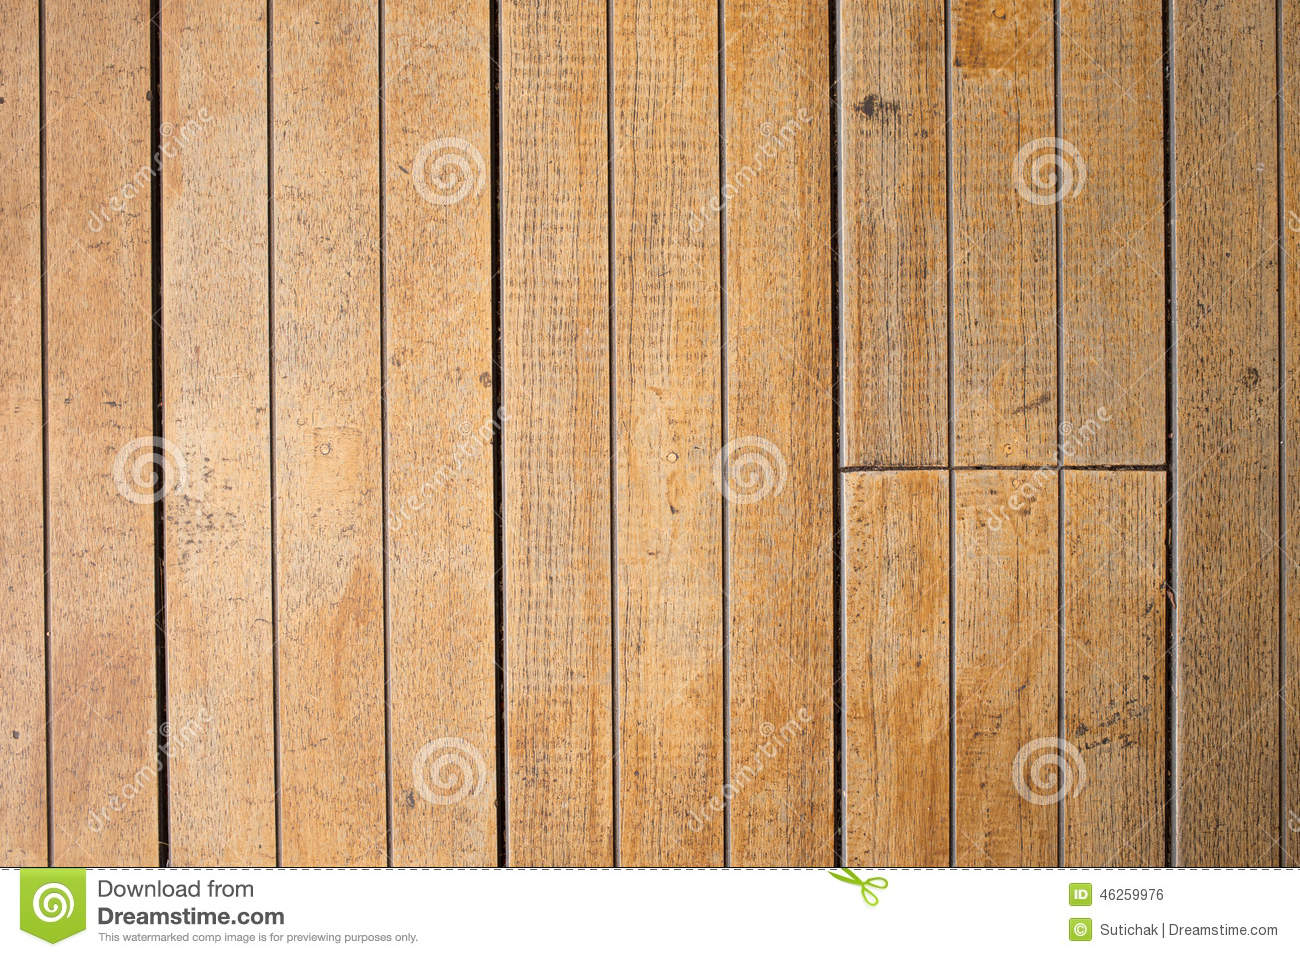 Superb img of Wood brown plank panel for floor. with #84A823 color and 1300x957 pixels